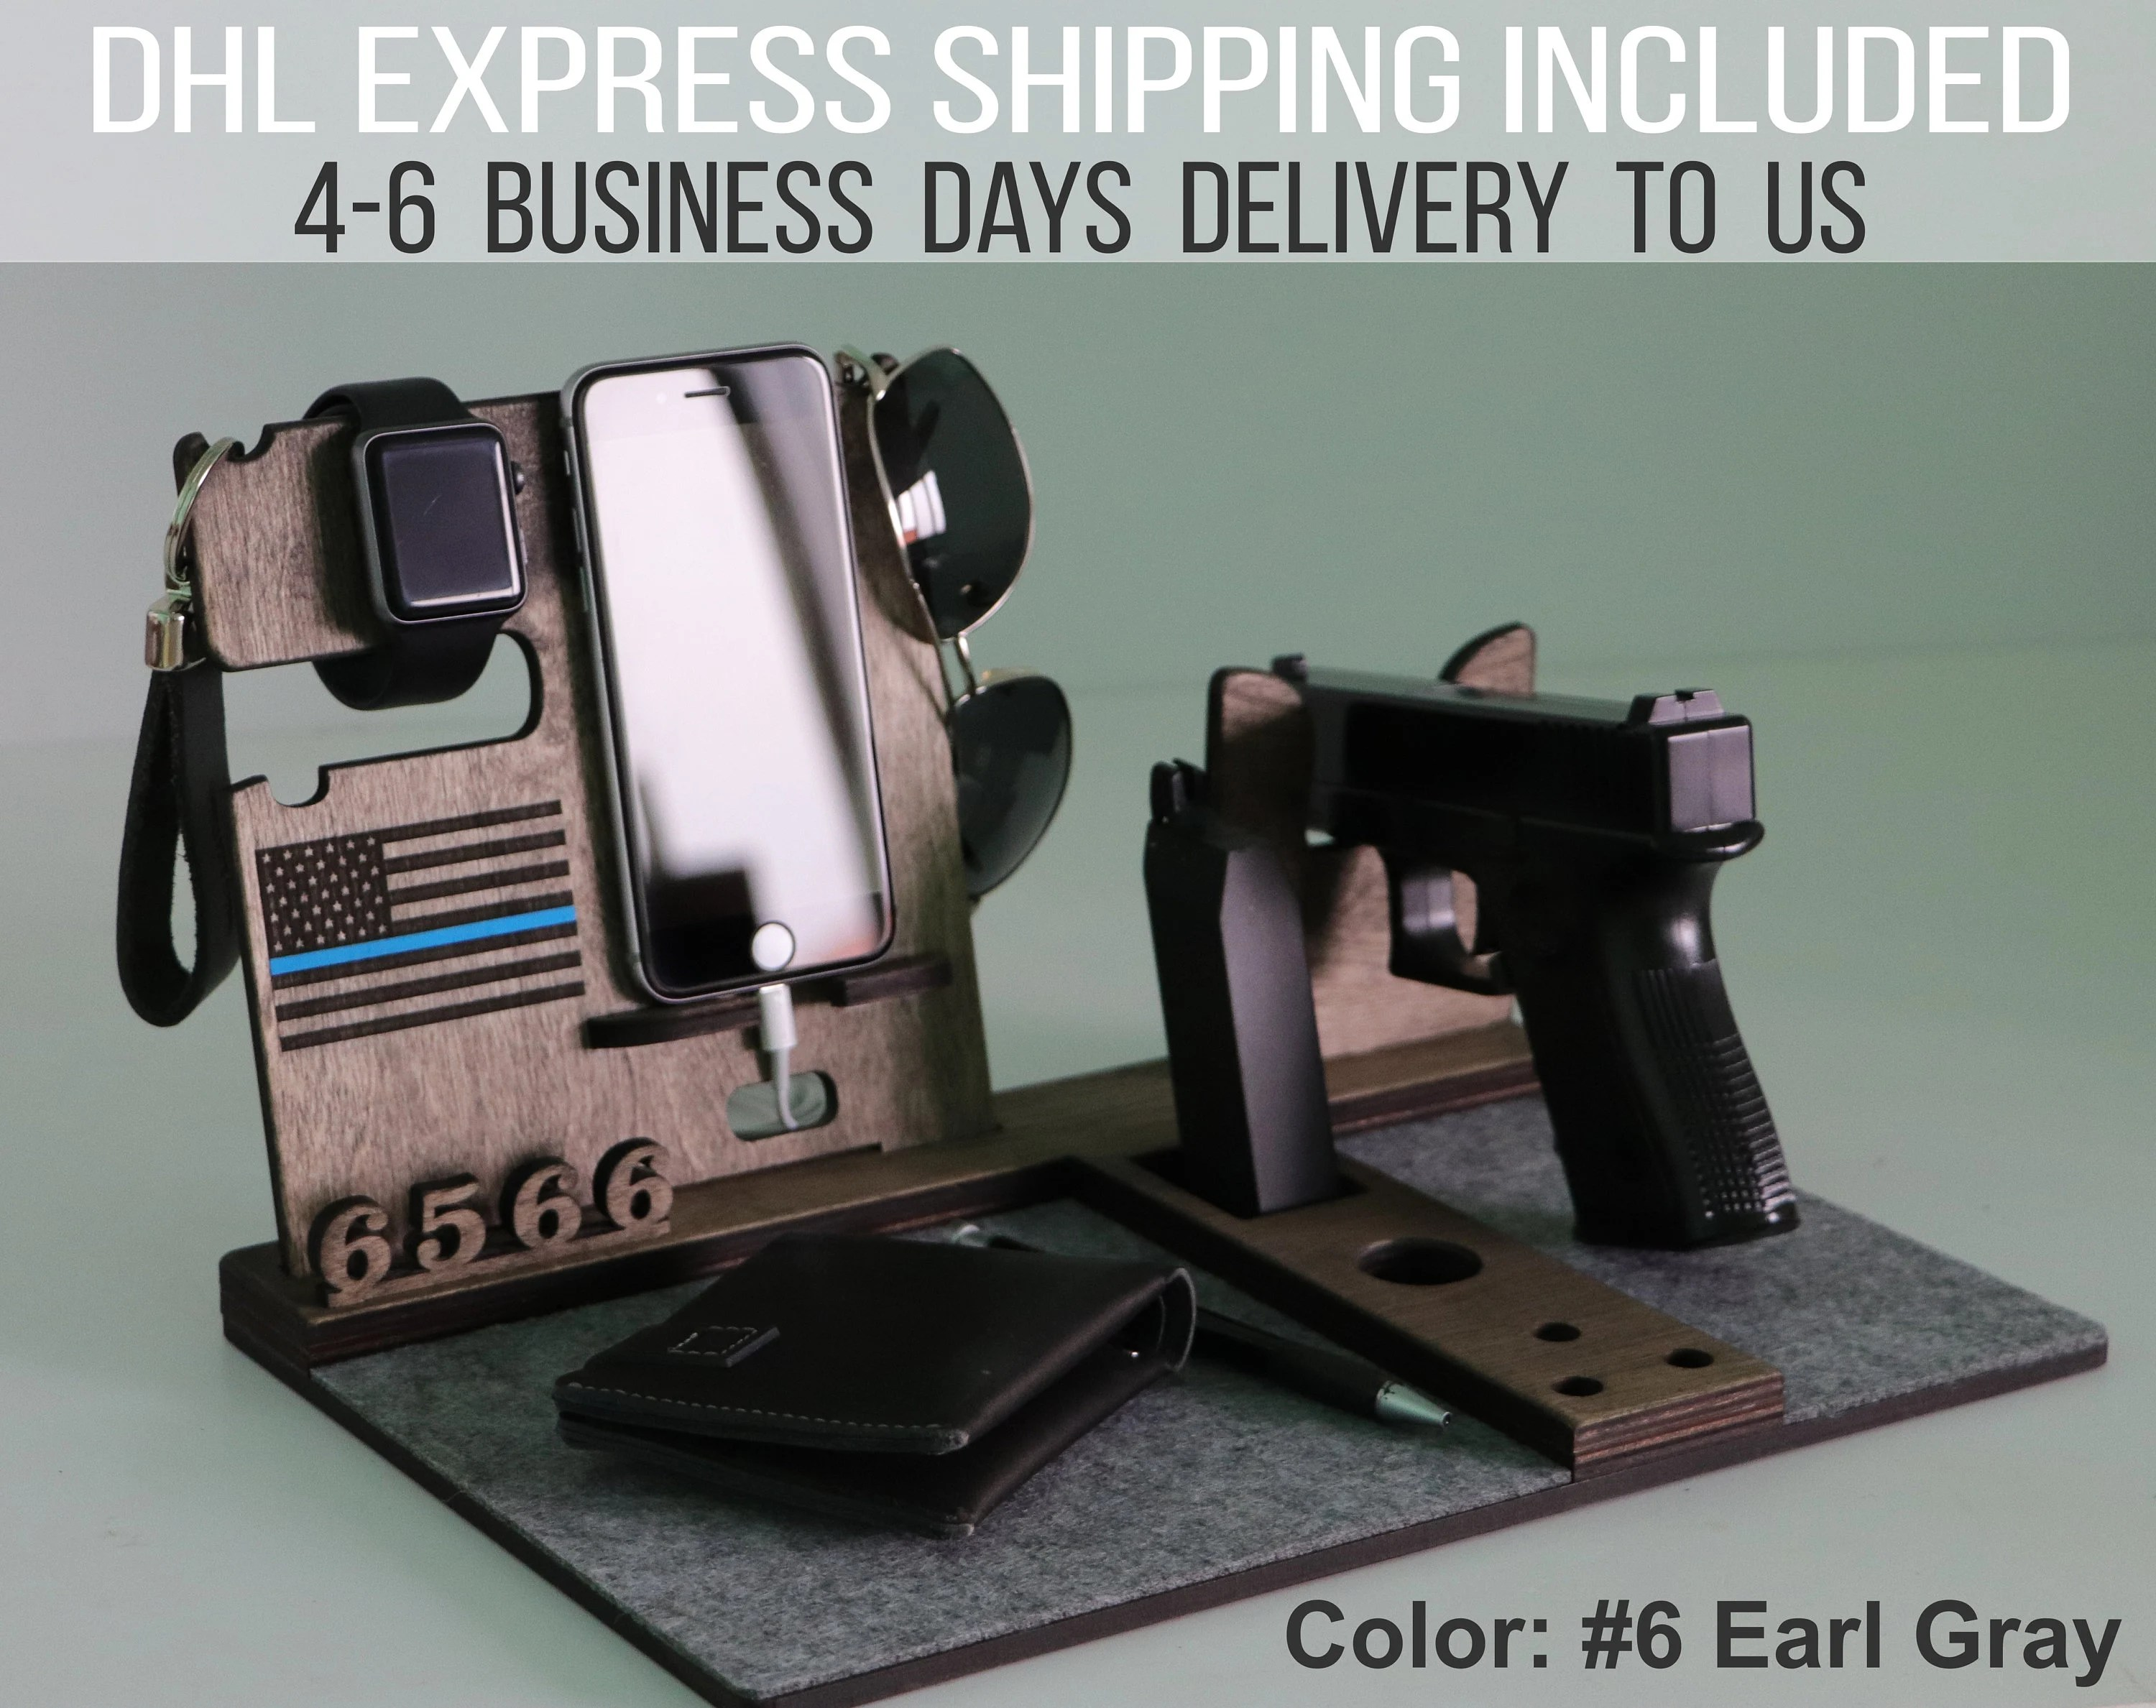 Phone Docking Station For Gun Custom Iphone And Gun Stand Bedside Table Gun Holder Multi Charging Station Law Enforcement Gift